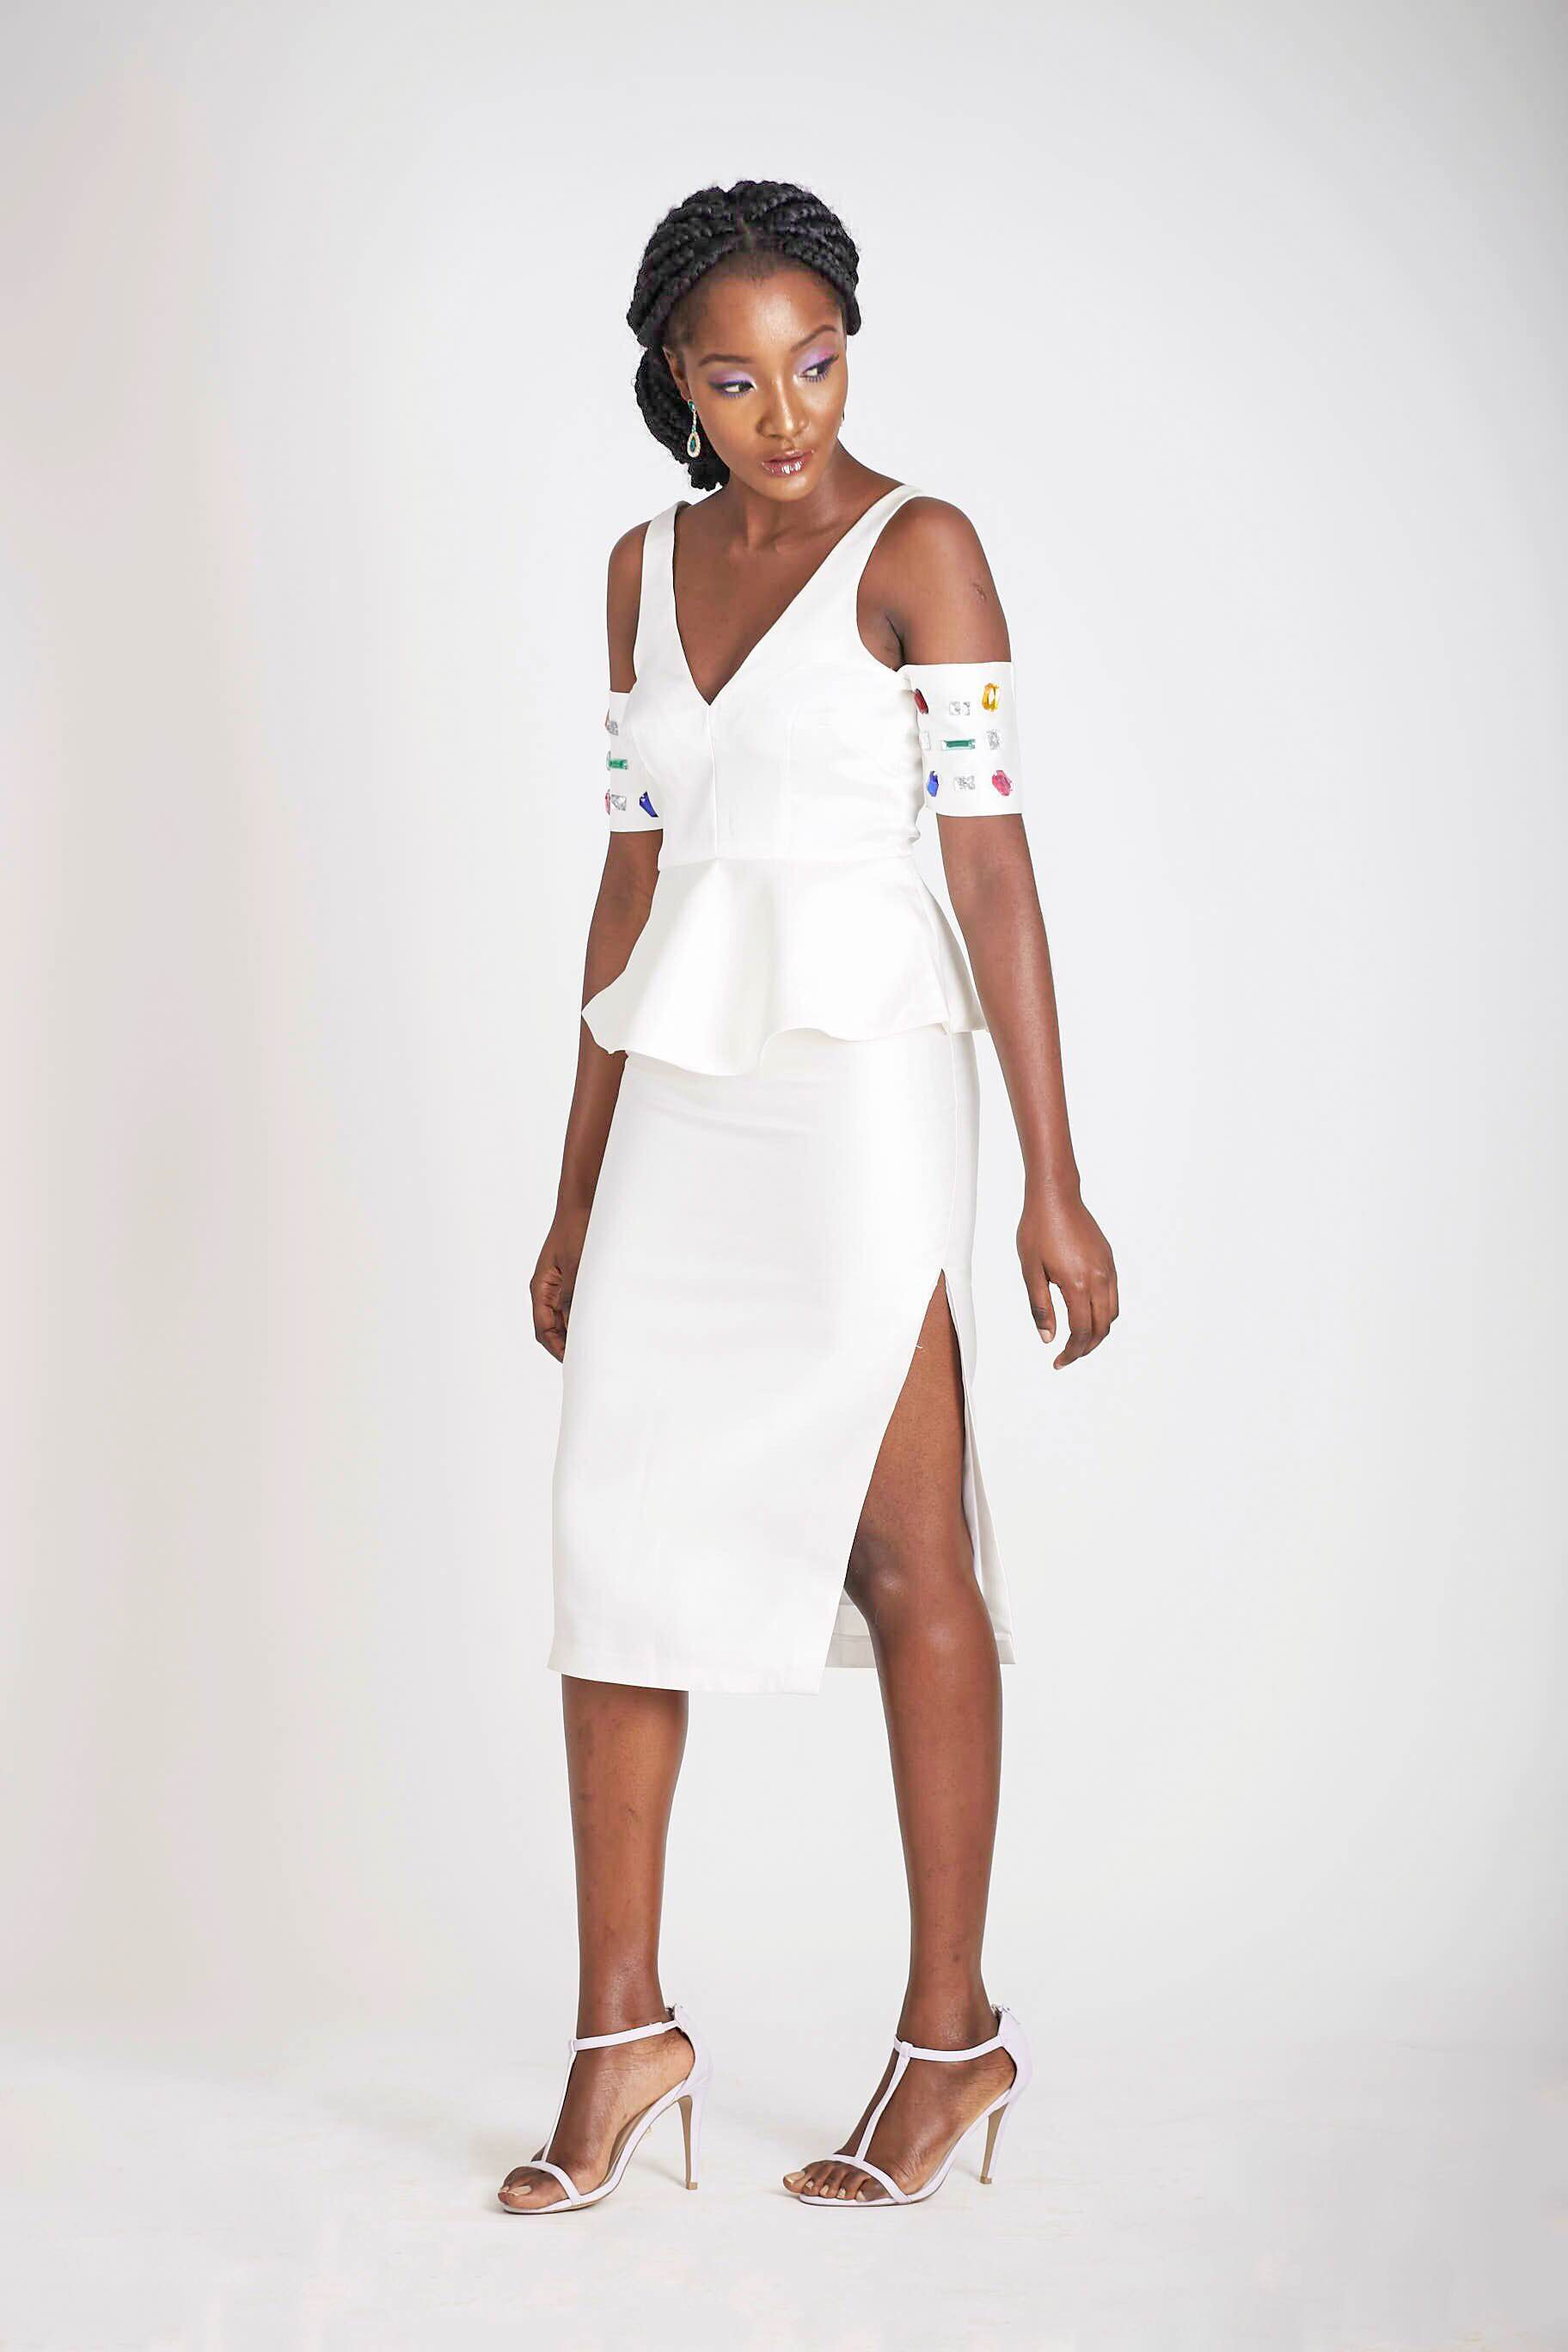 Imad Eduso - BN Style - Collection Lookbook - BellaNaija.com 04